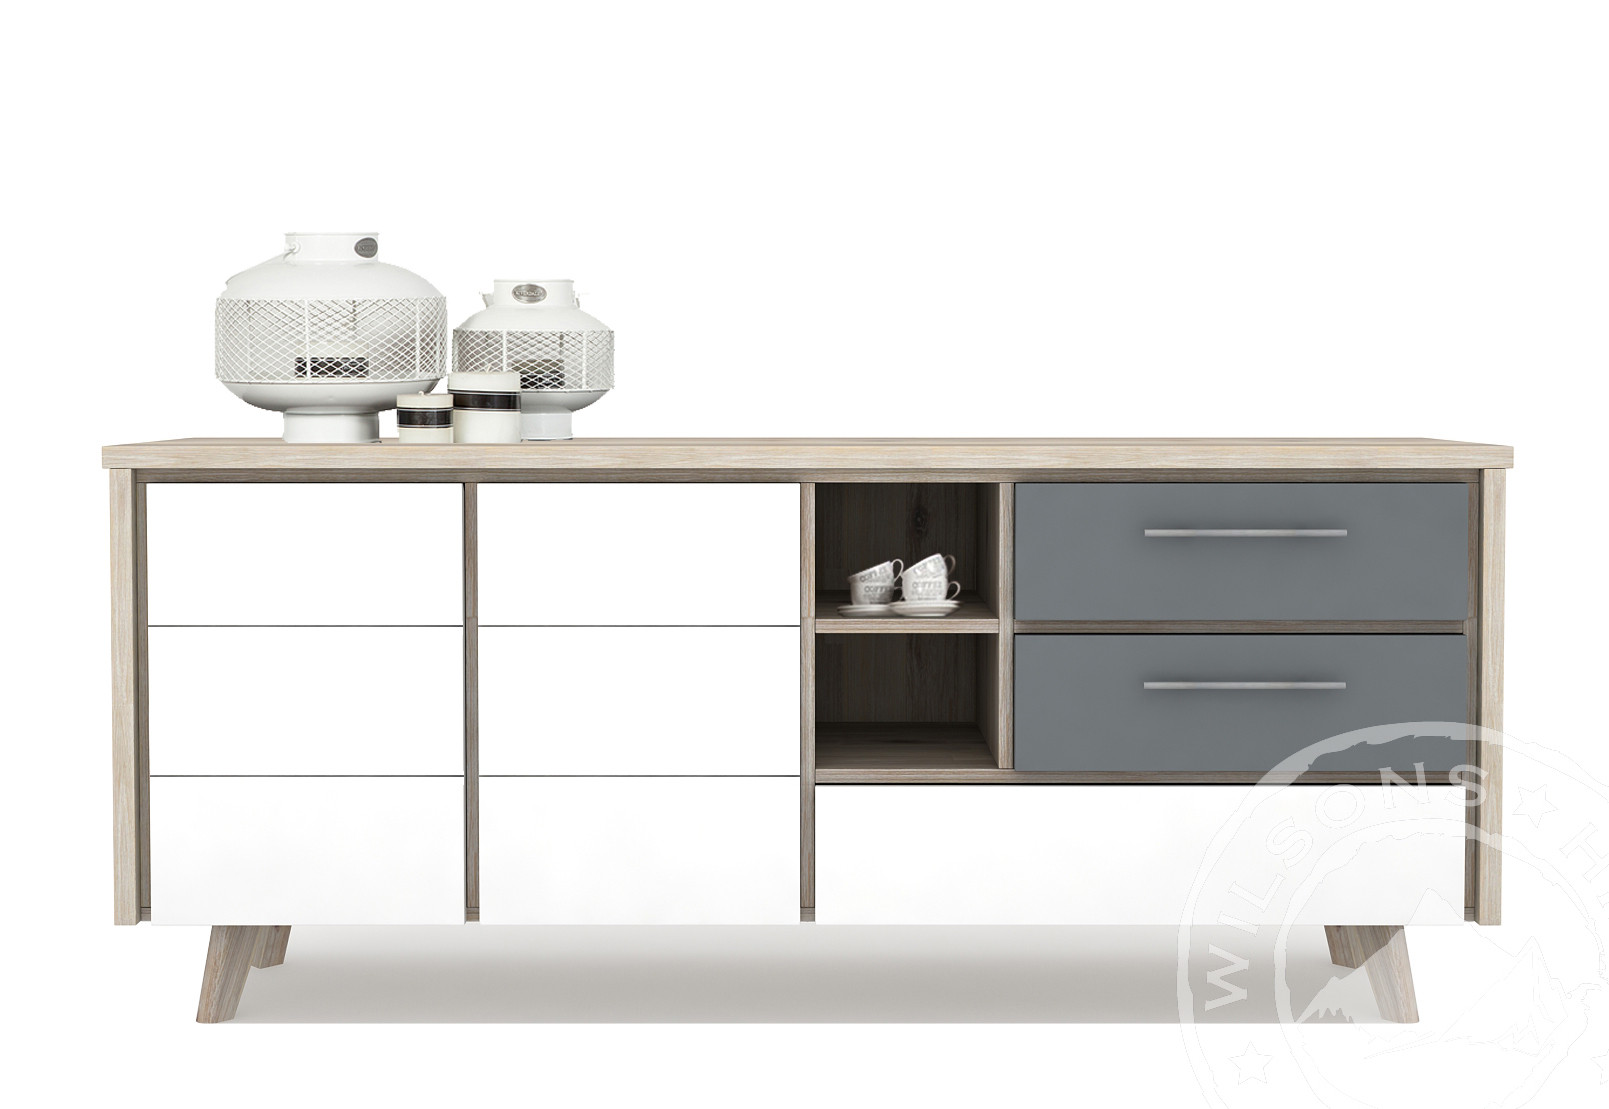 Ronda (Sideboard 3drws, 2drs, 3niches)